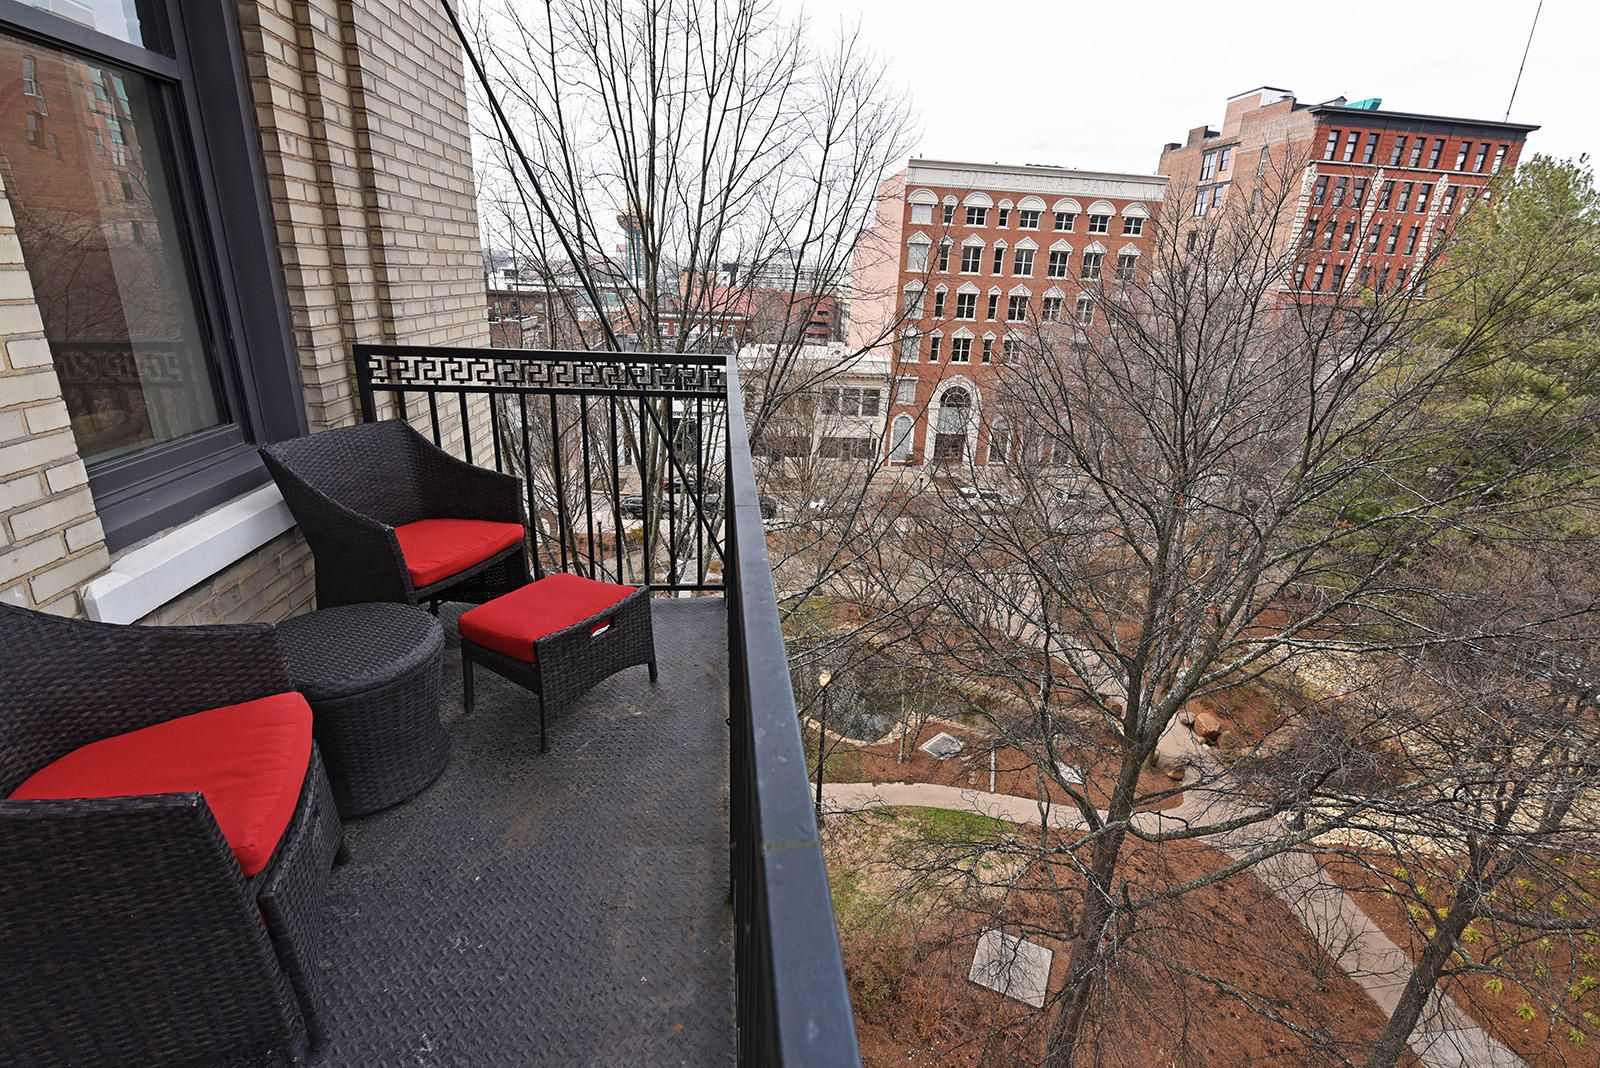 Holston 503 - 08 Balcony Day Krutch Park